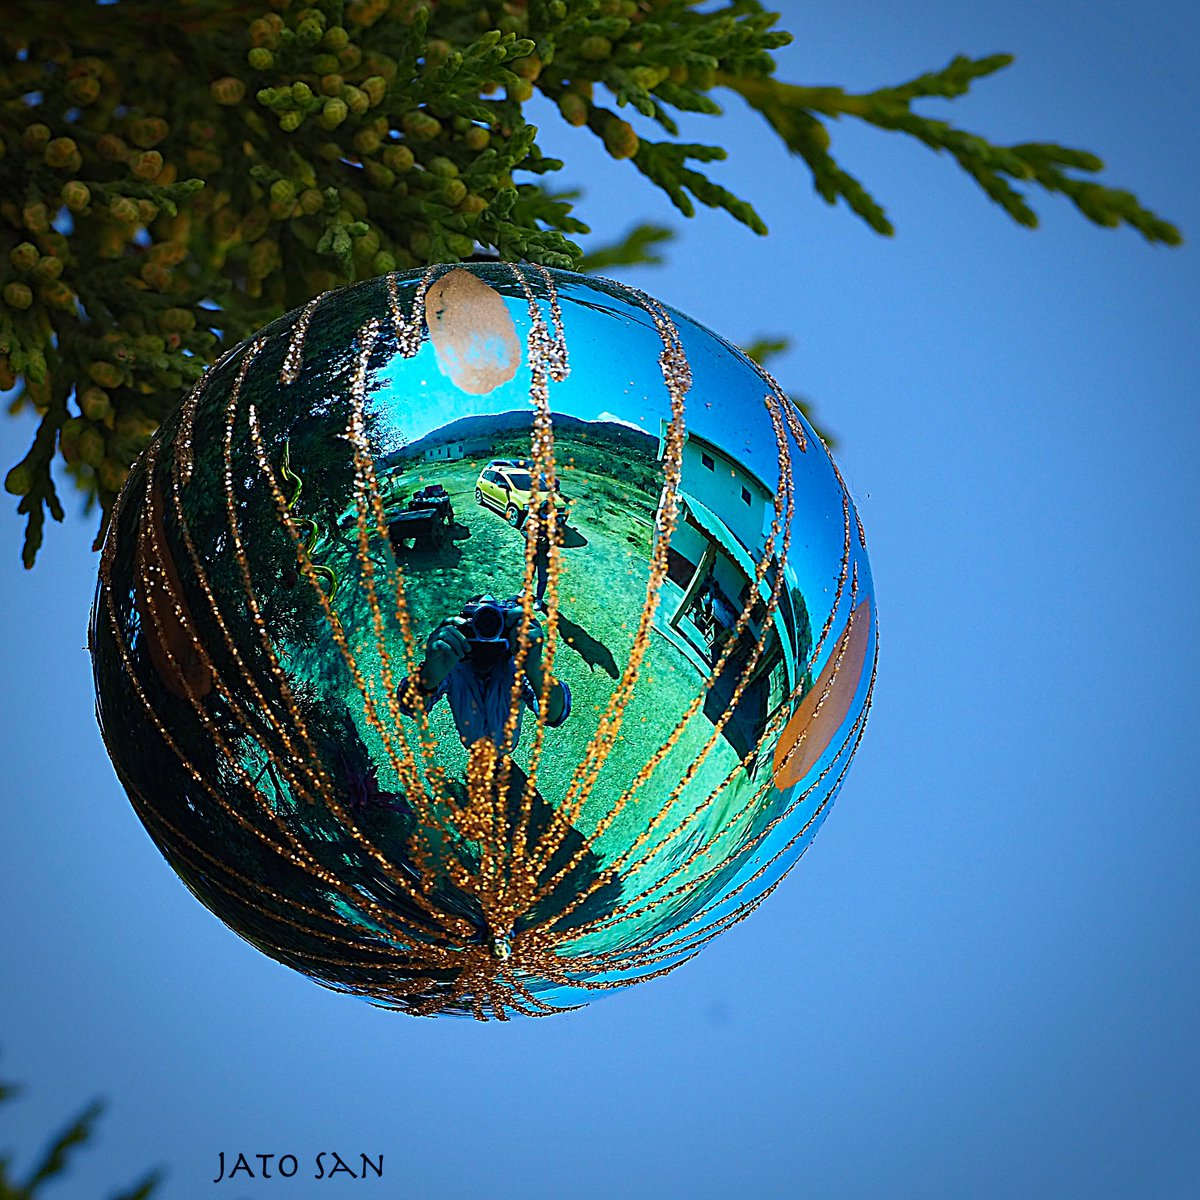 Photo by: José Angel Soto  #spheres #crystals #crystalhealing #crystalsphere #crystal #christmasgift #christmas #xmas #christmasdecor #merrychristmas #handmade #christmasgifts #gift #holidays #navidad #gifts #homedecor #photo #photographer #picoftheday #photographerspuebla